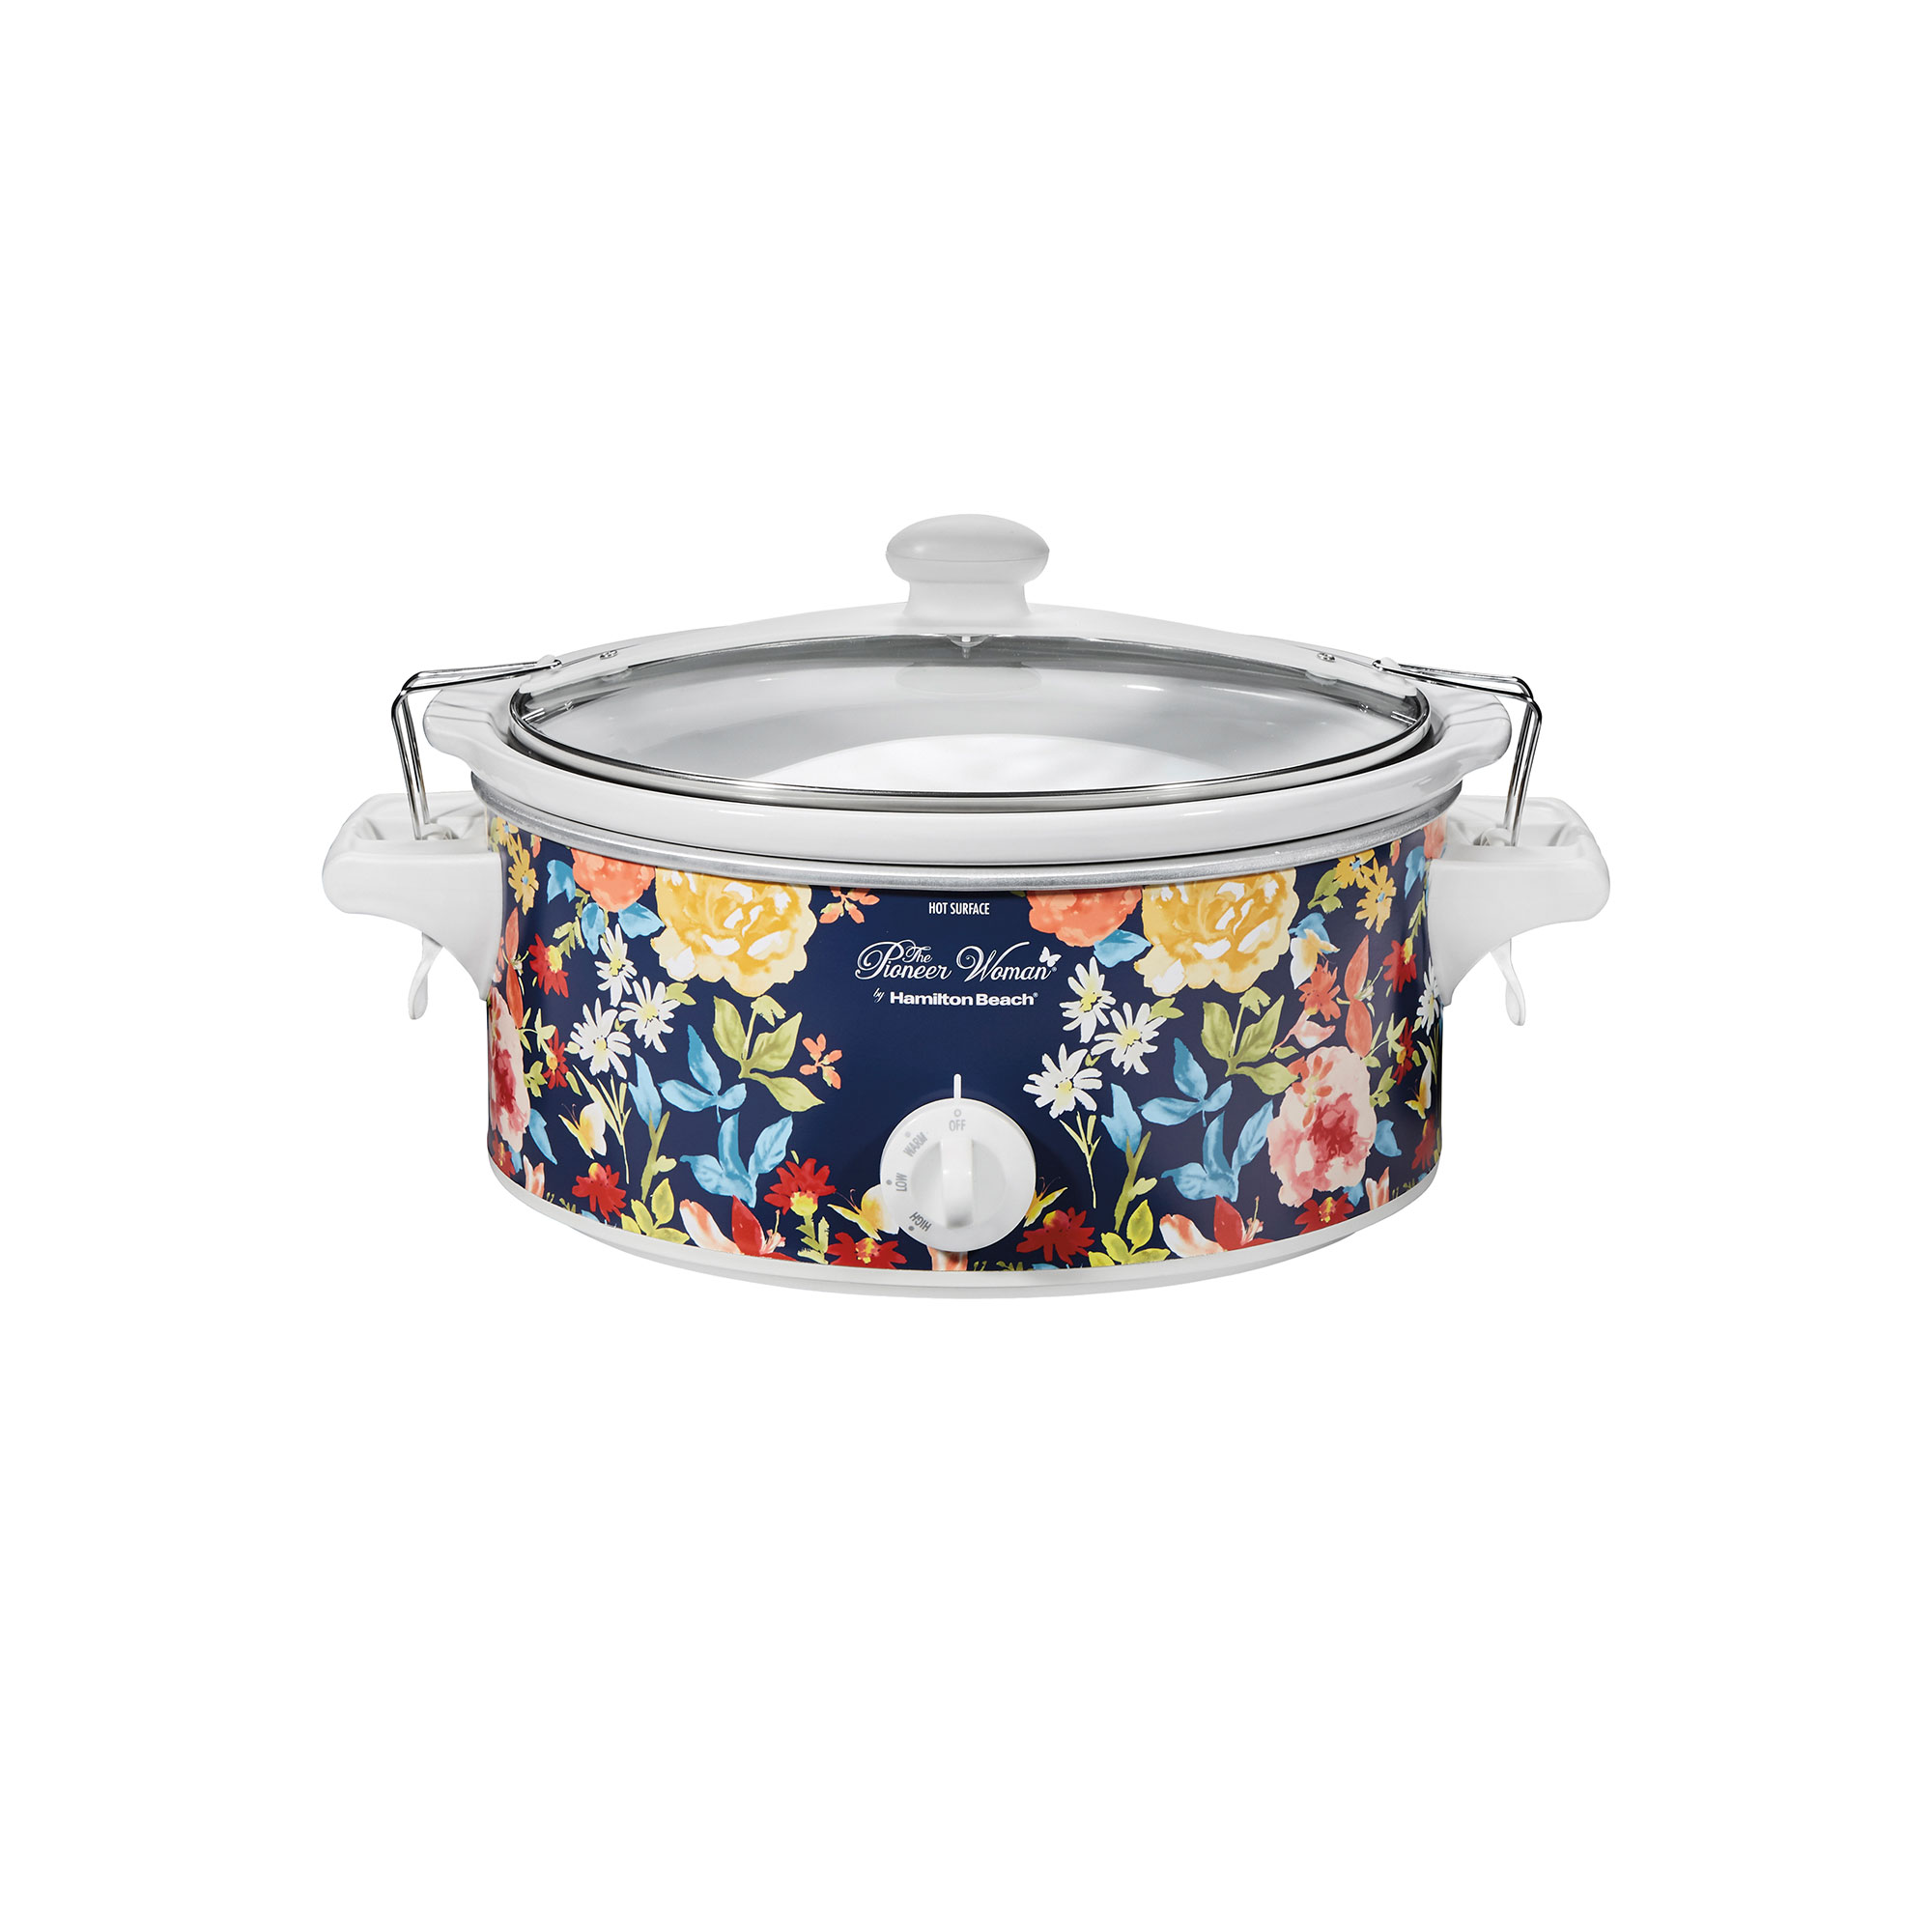 floral patterned slow cooker on a white backgroun